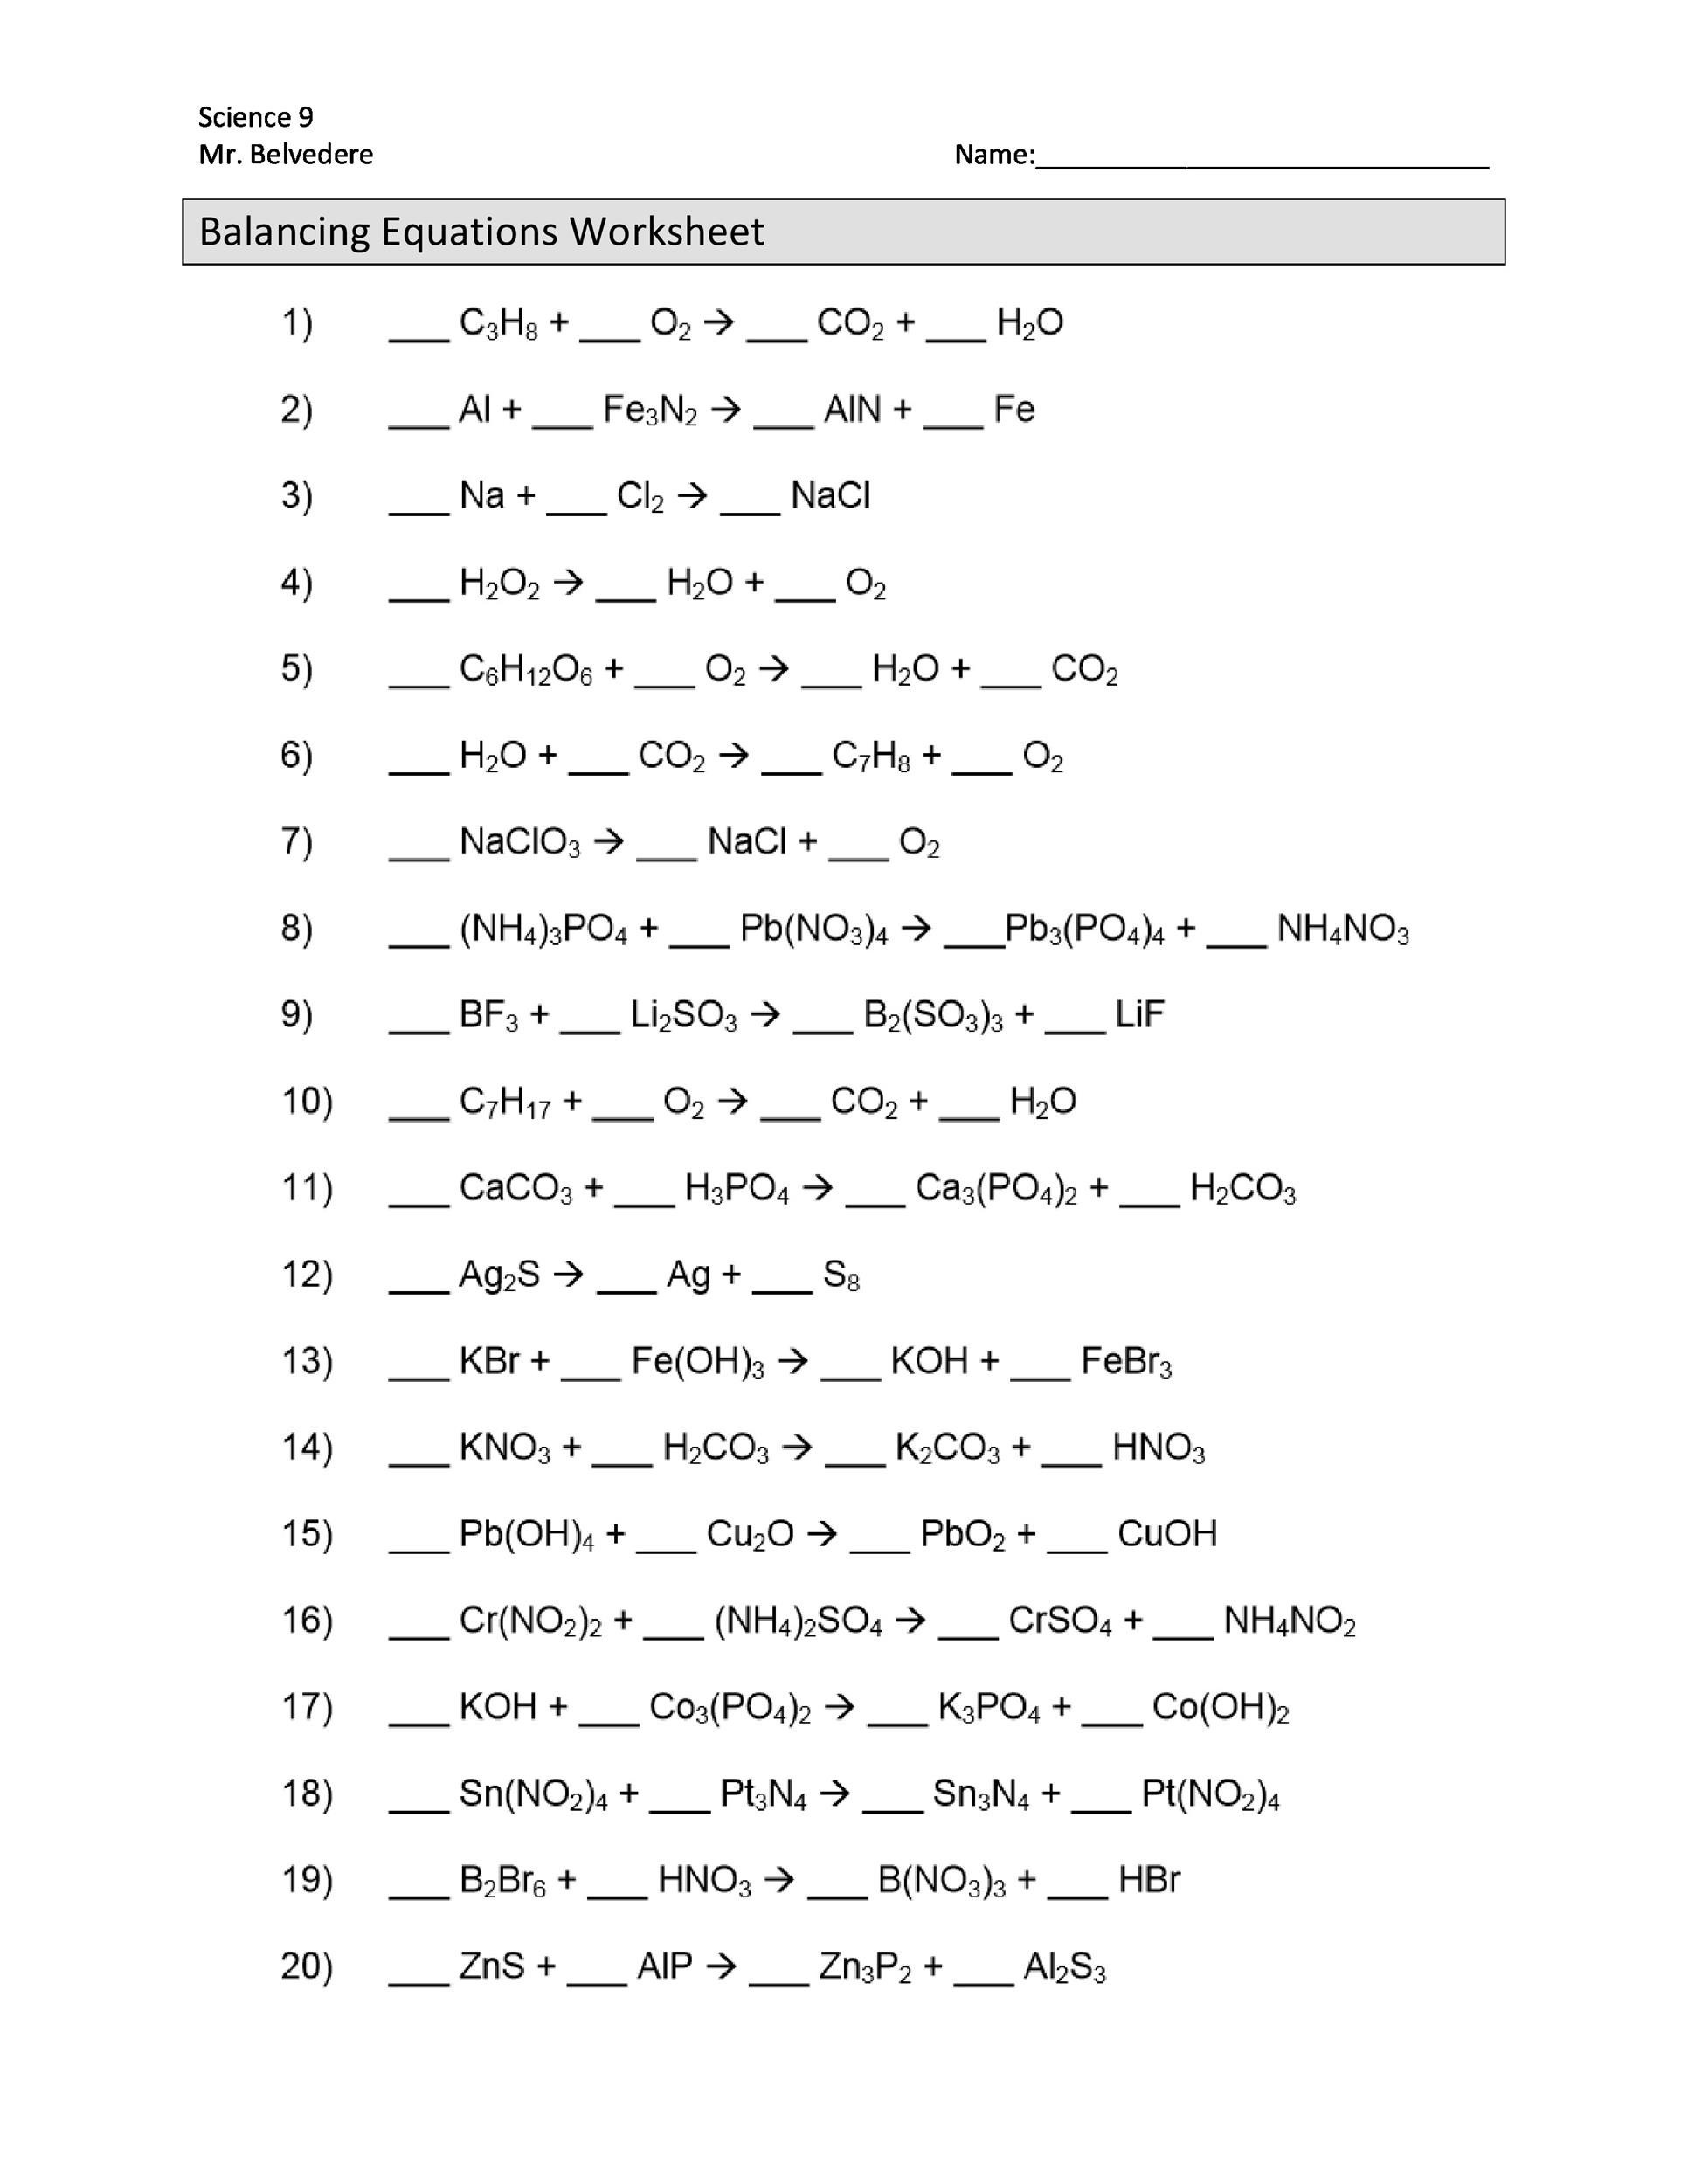 Worksheets Worksheet-balancing-equations-answers 49 balancing chemical equations worksheets with answers answers